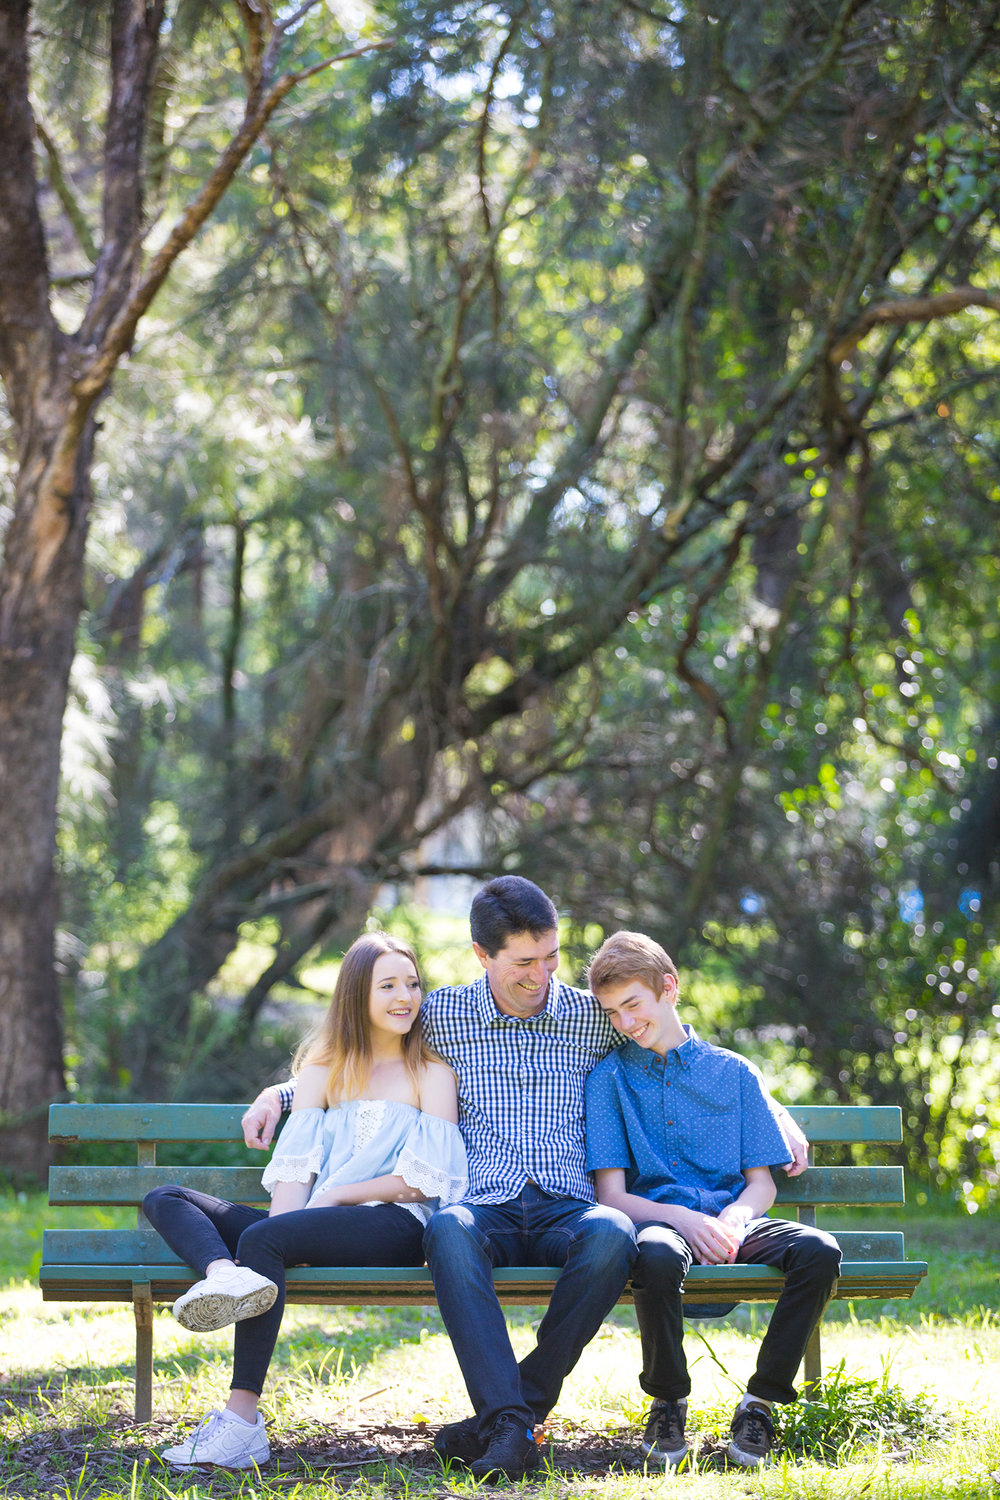 Sydney Family Photographer - Jennifer Lam Photography (15).jpg